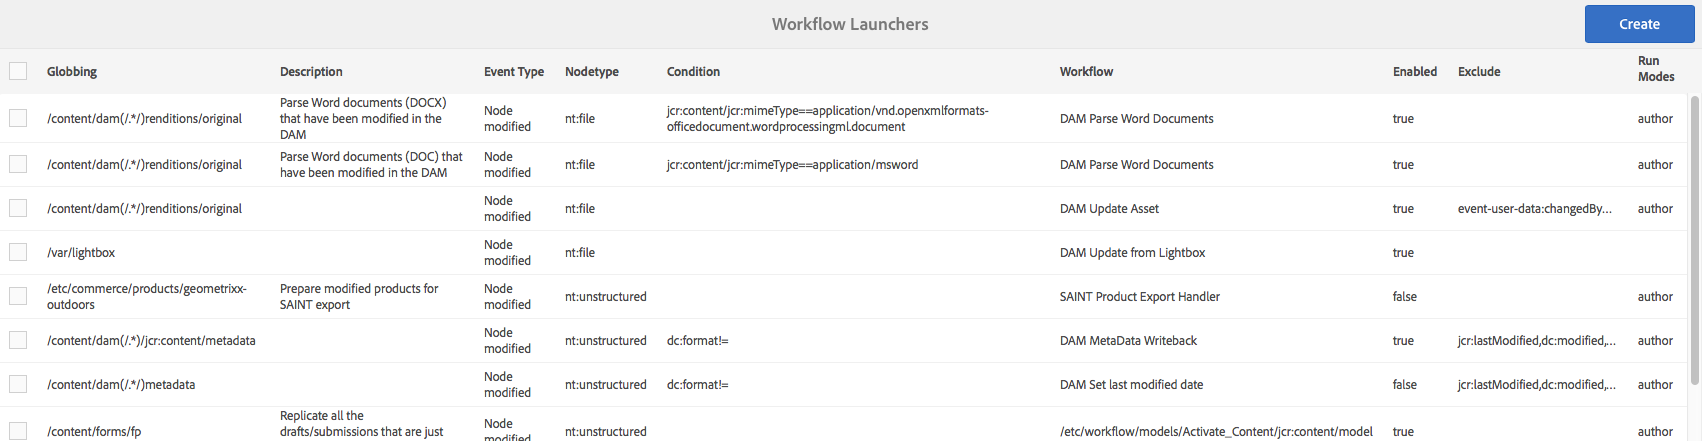 workflowlauncher